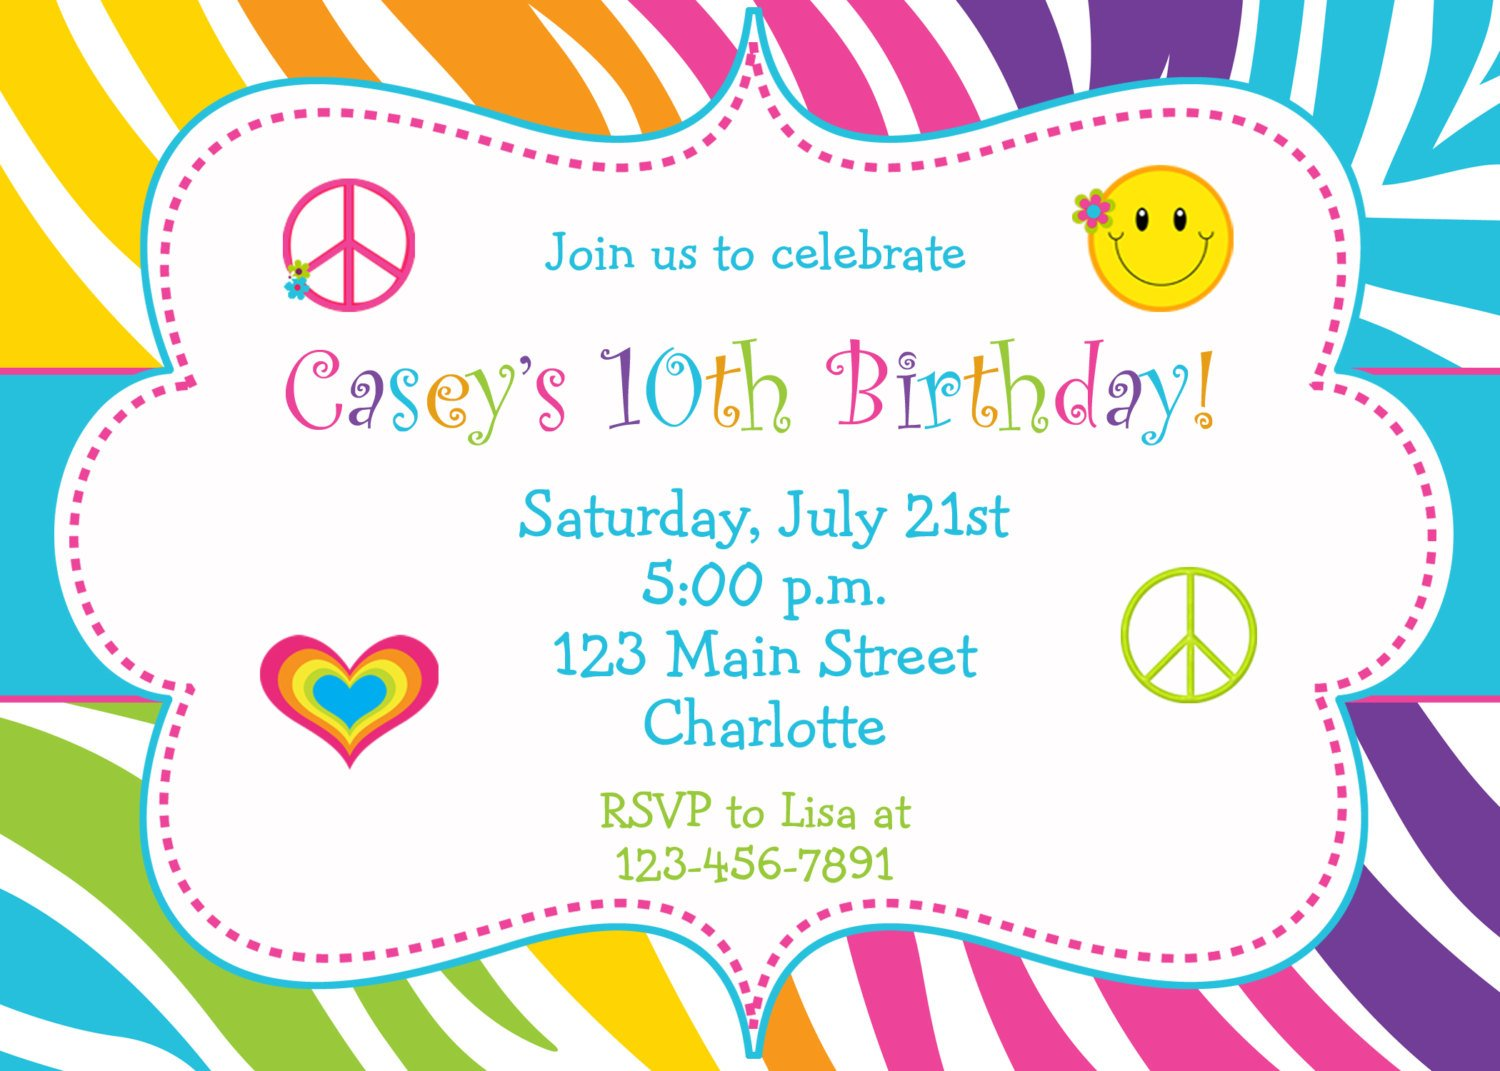 kids print birthday invitations at home